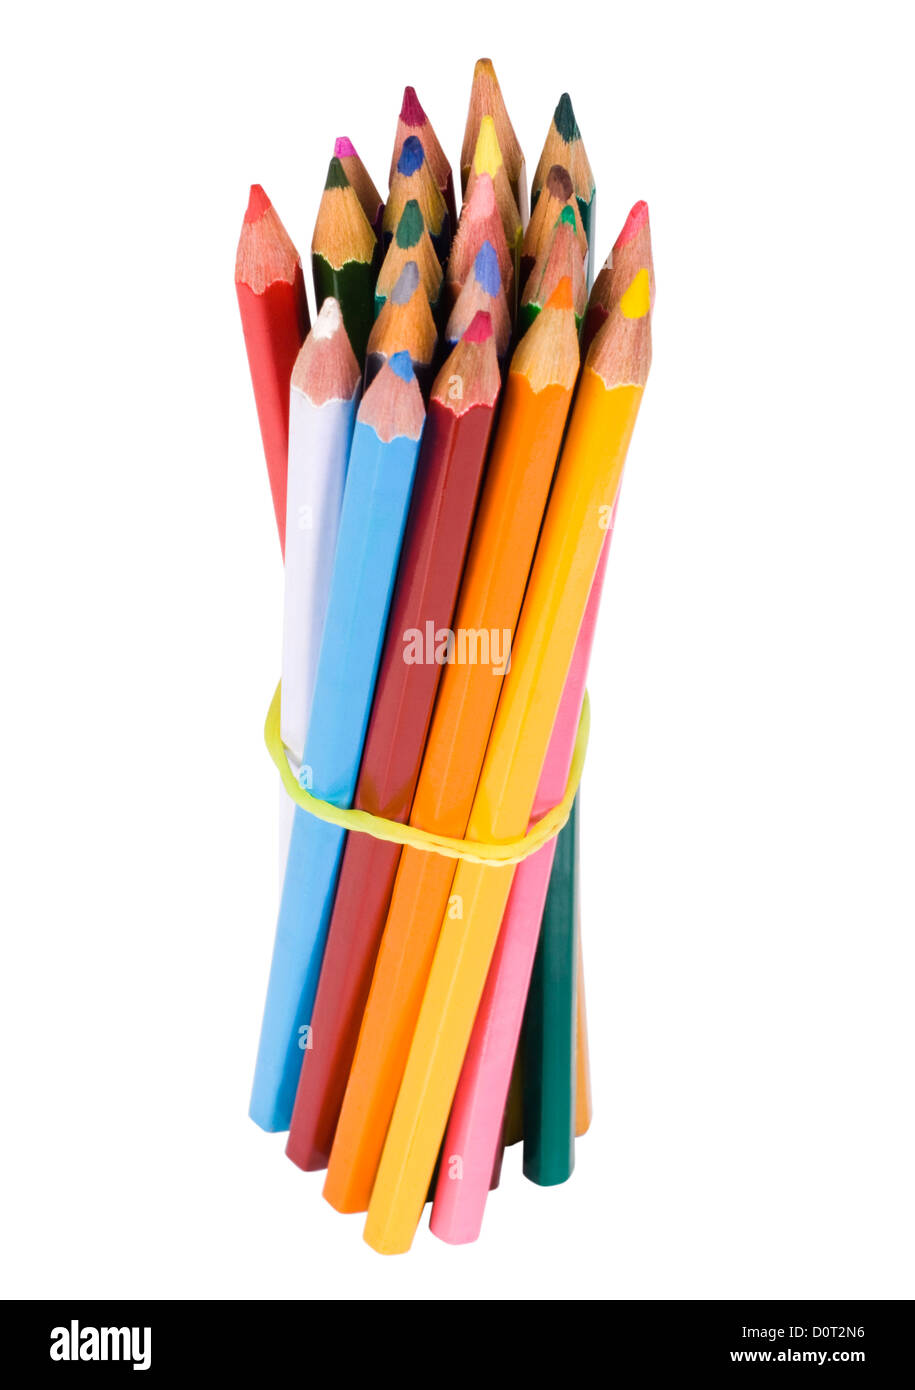 Bundle of colored pencils tied with an elastic band - Stock Image